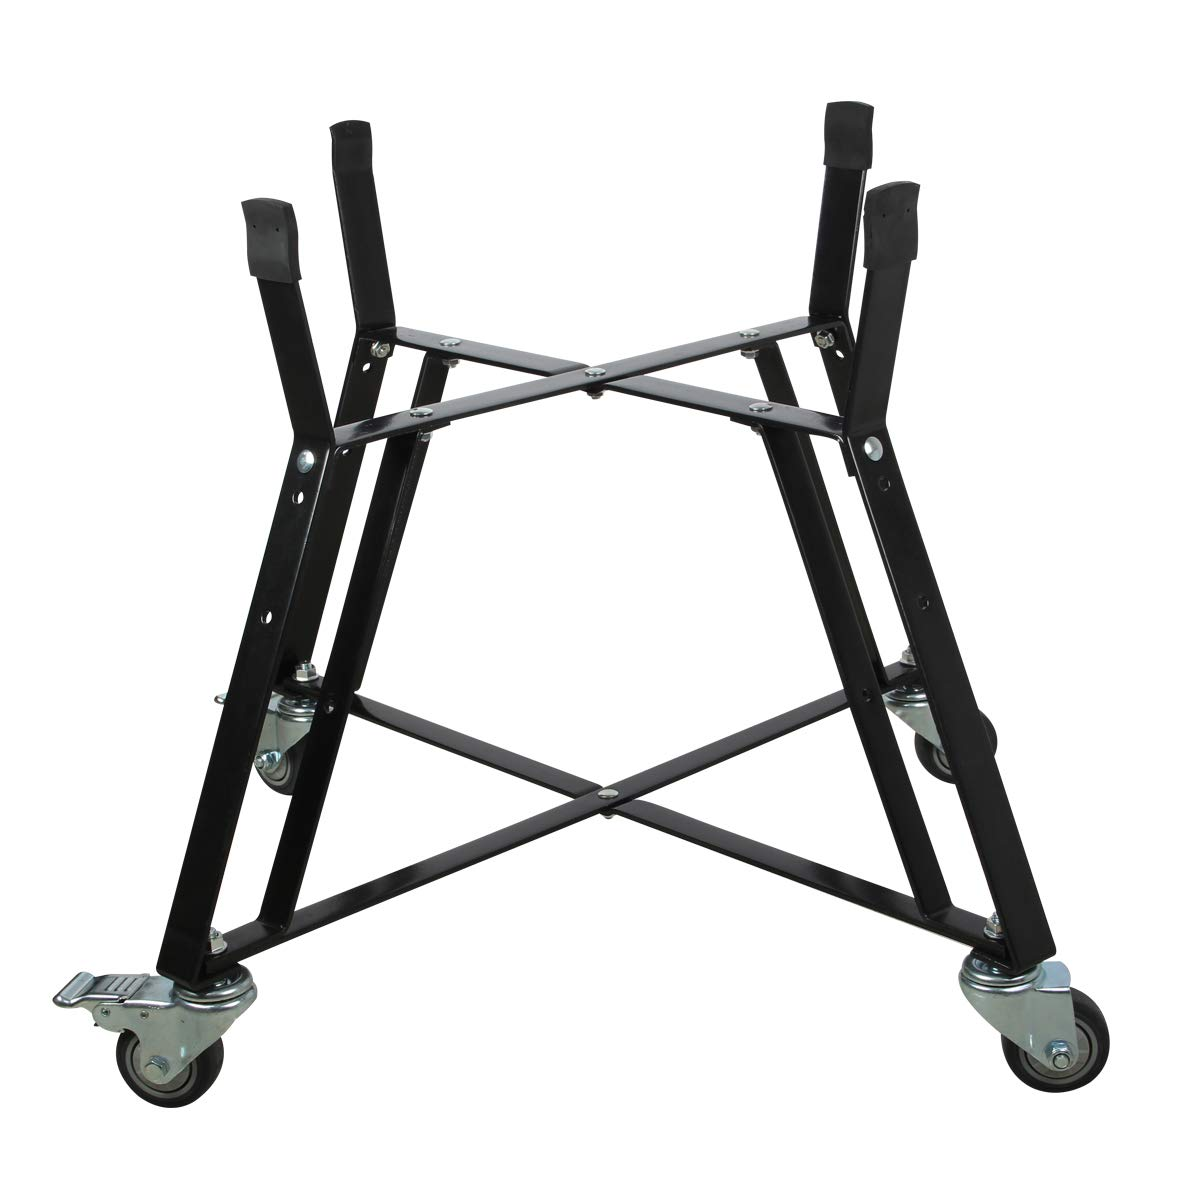 Big Green Egg Accessories Rolling Cart Nest for XLarge Big Green Egg Accessories,Big Green Egg Nest Stand Rolling Outdoor Cart Nest with Heavy Duty Locking Caster Wheels Powder Coated Steel by WRKAMA